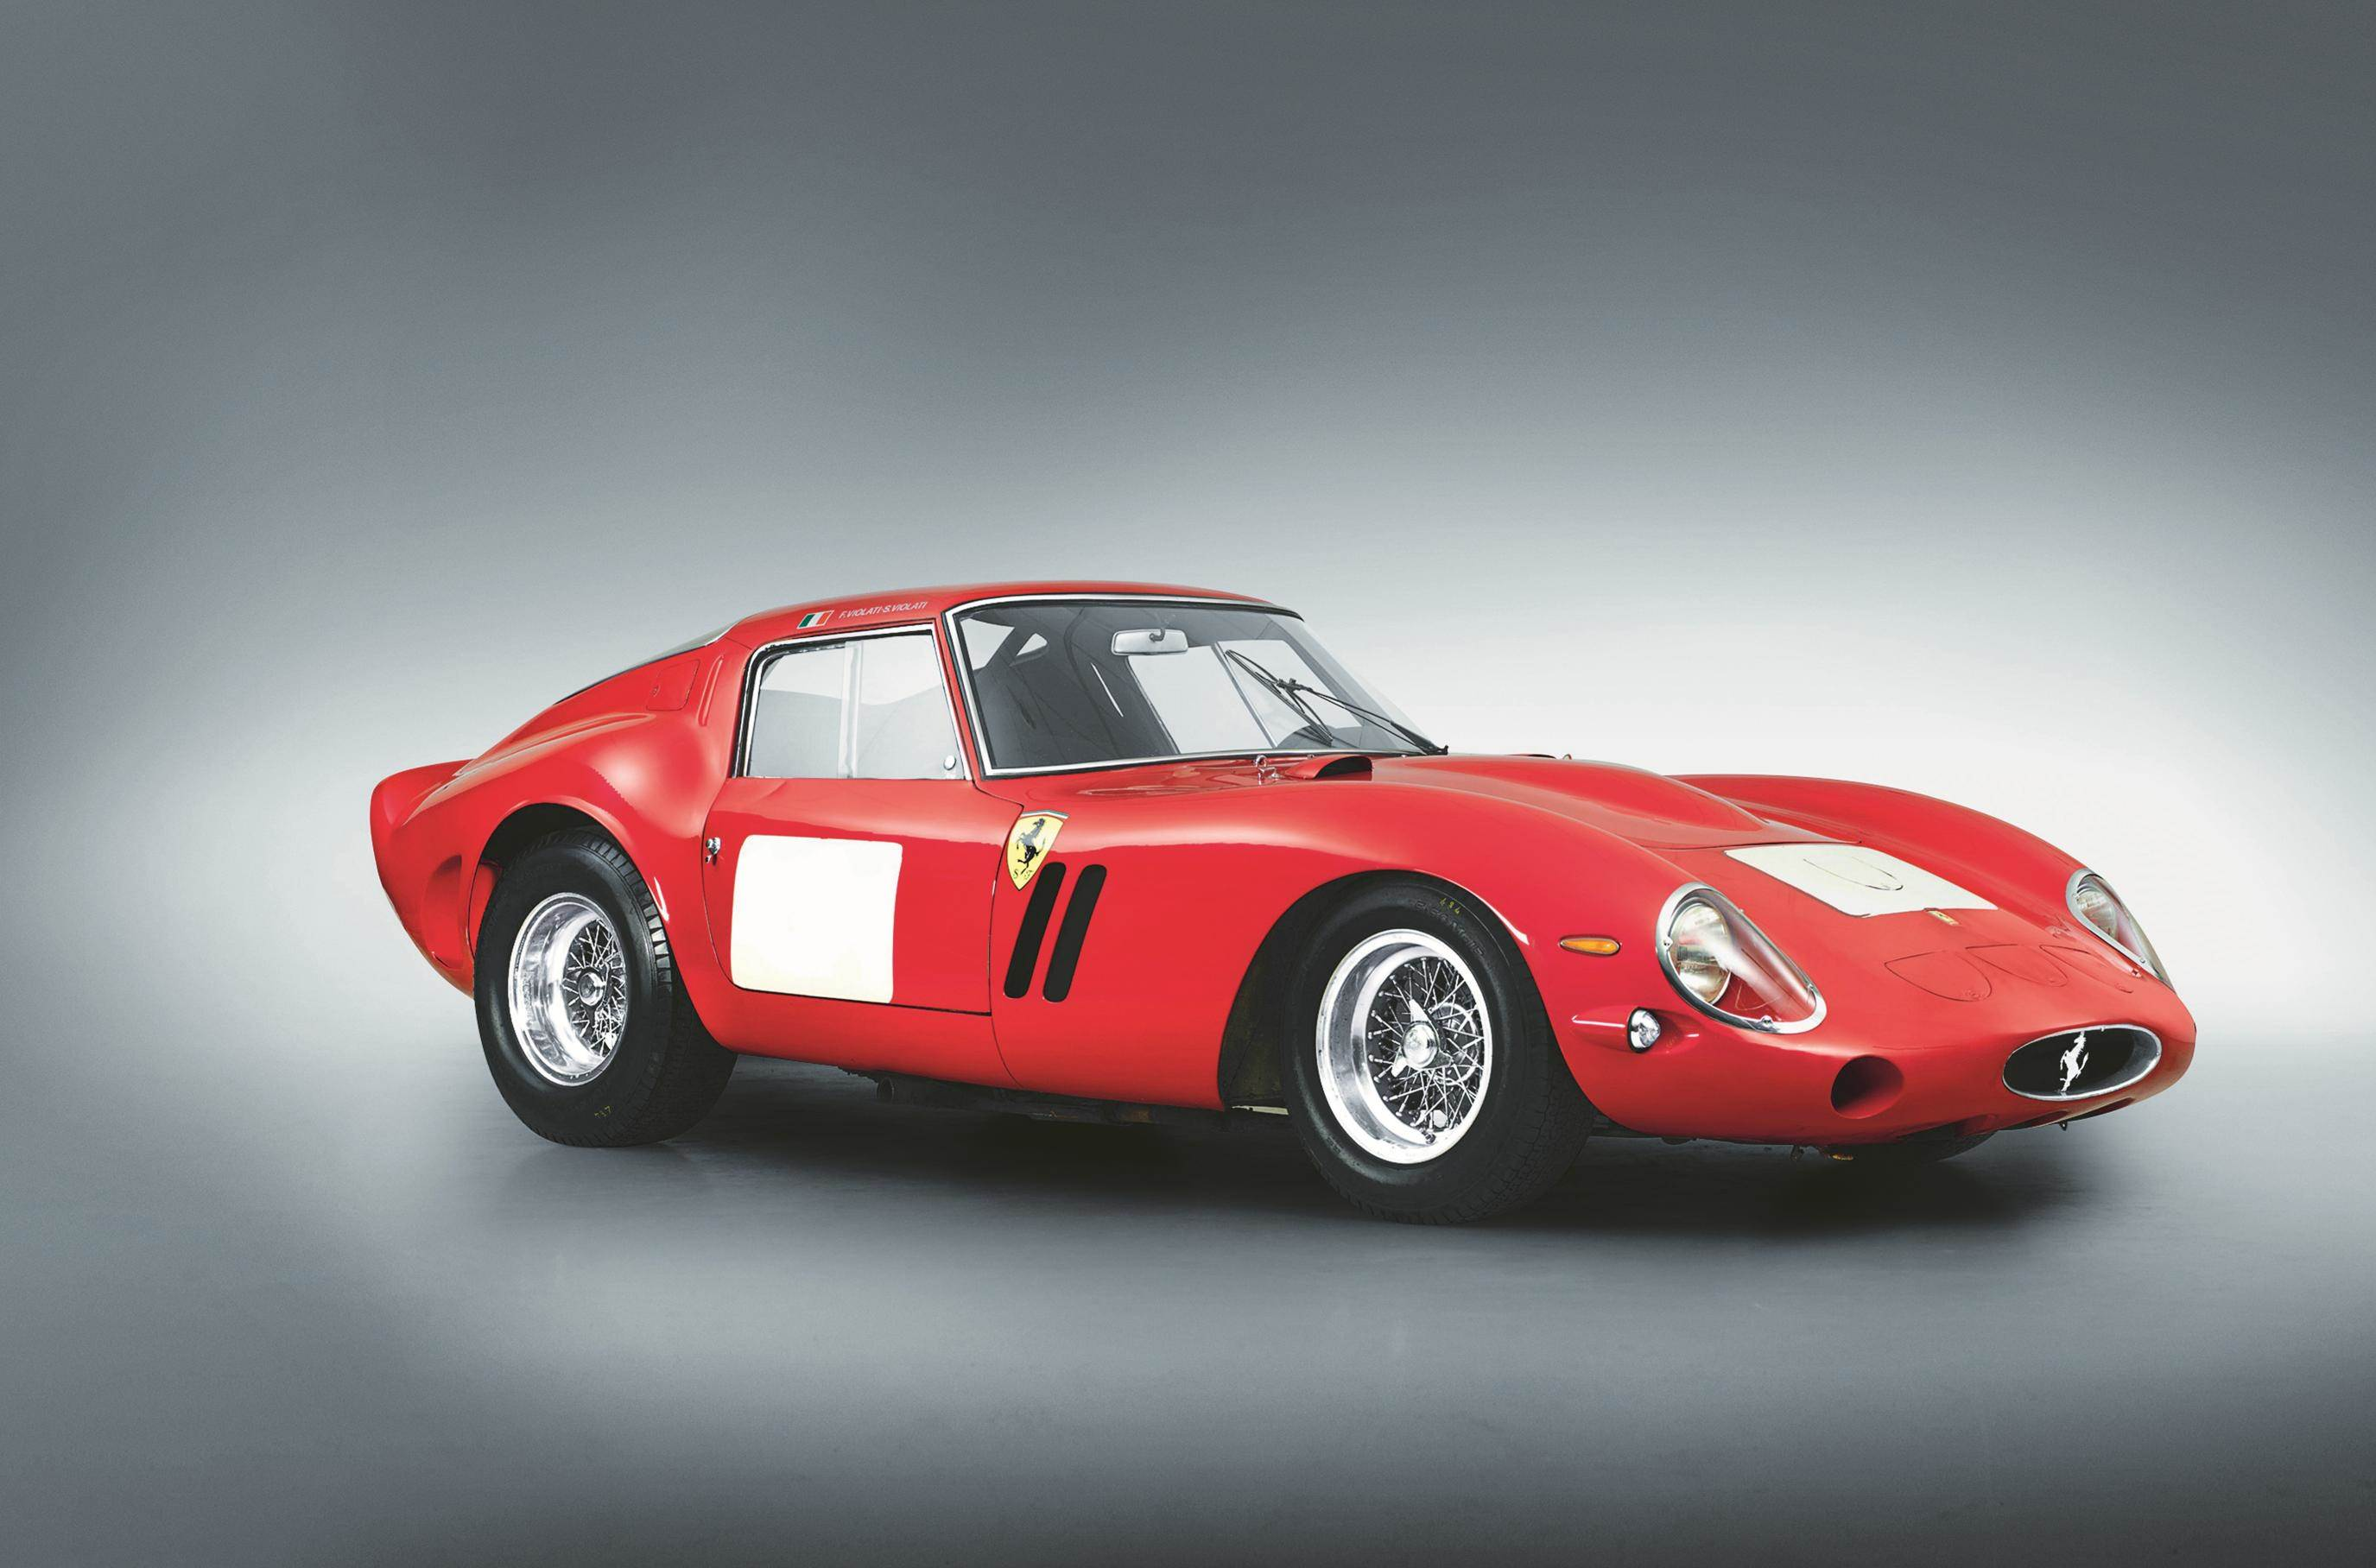 image of a classic red ferrari 250 gto berlintetta car